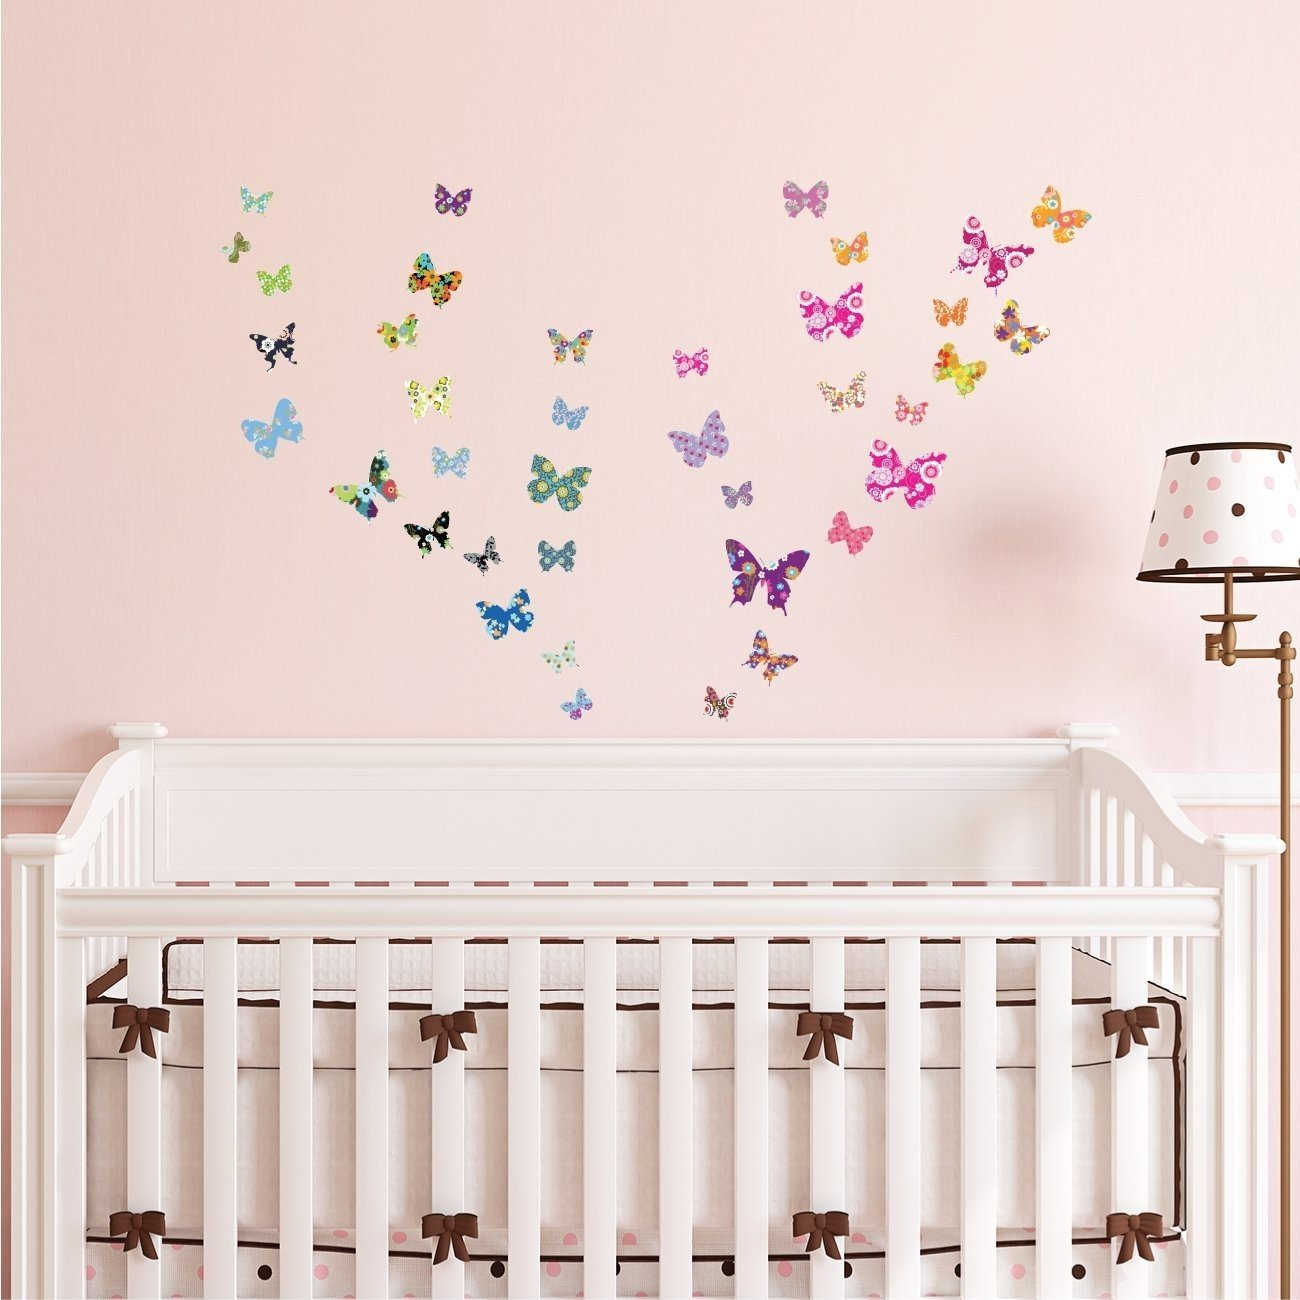 Decowall DW-1201 38 Colourful Butterflies Kids Wall Stickers Wall Decals Peel and Stick Removable Wall Stickers for Kids Nursery Bedroom Living Room